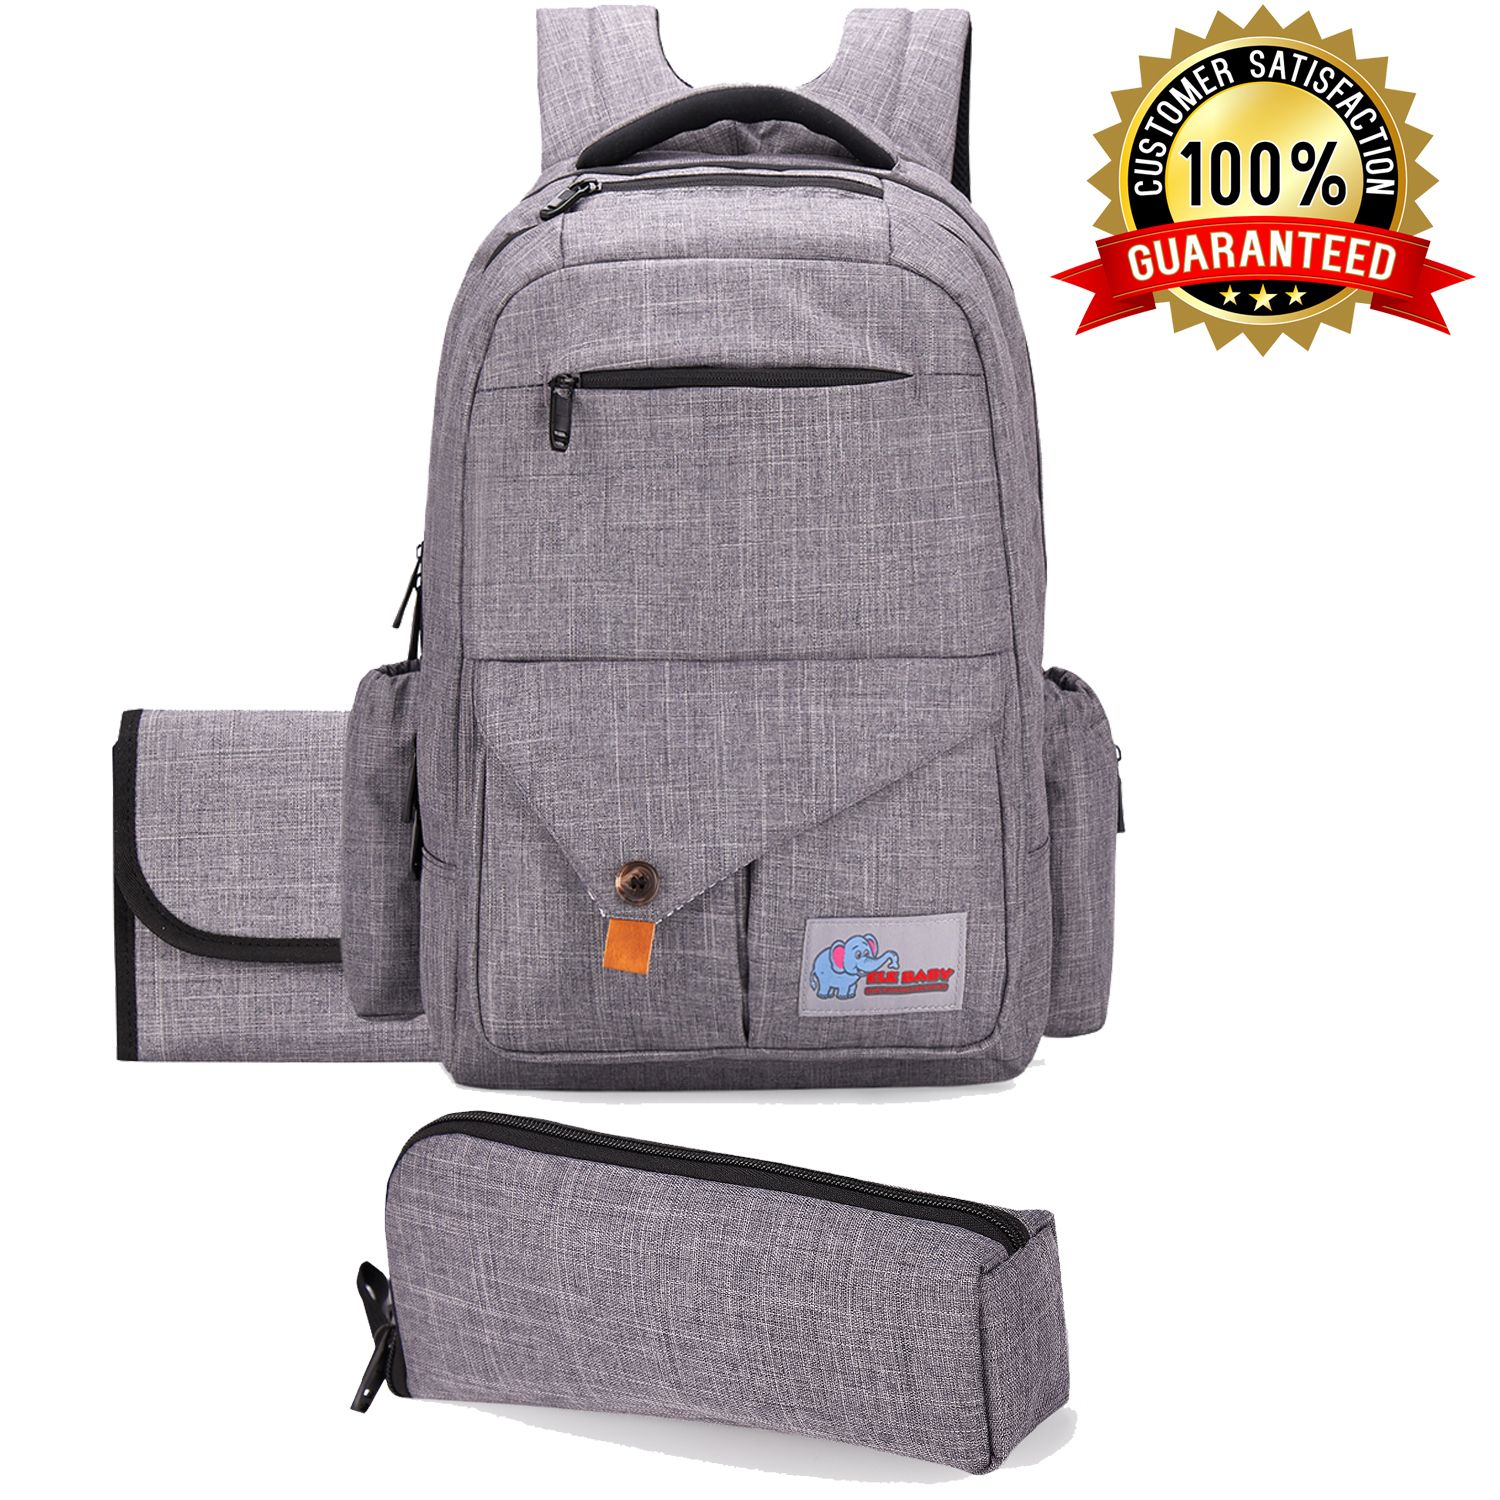 Baby Diaper Bag Backpack Multi-functional Travel Backpack with Changing Pad  and BONUS Insulated Bottle Bag 3066deb81bc64